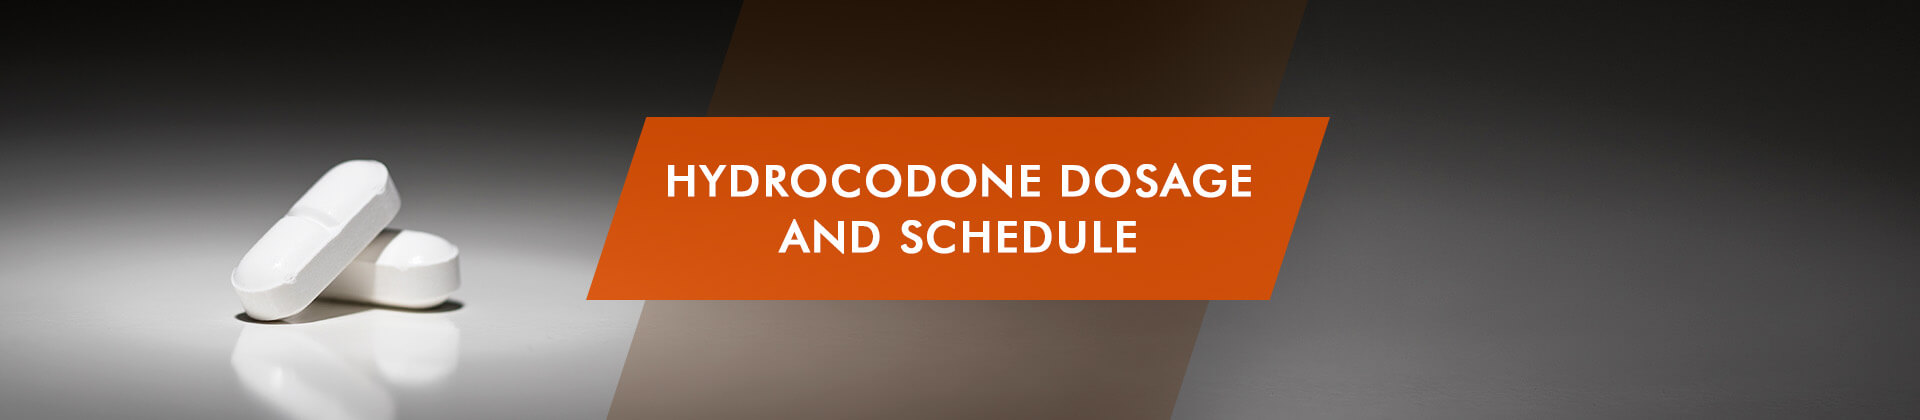 Hydrocodone Dosage and Schedule